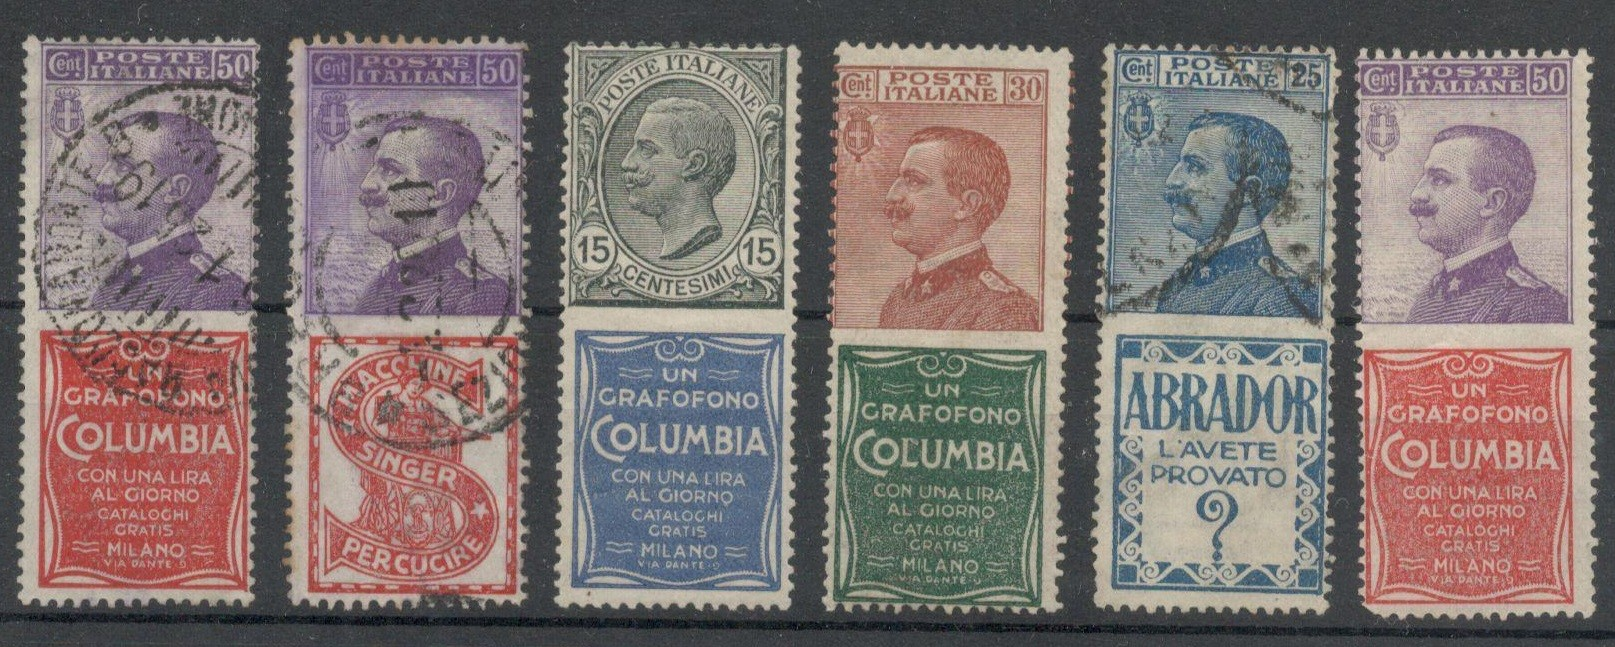 Lot 12 - STAMPS OF THE KINGDOM OF ITALY 1924 - SIX STAMPS WITH ADVERTISING TABS, USED AND UNUSED